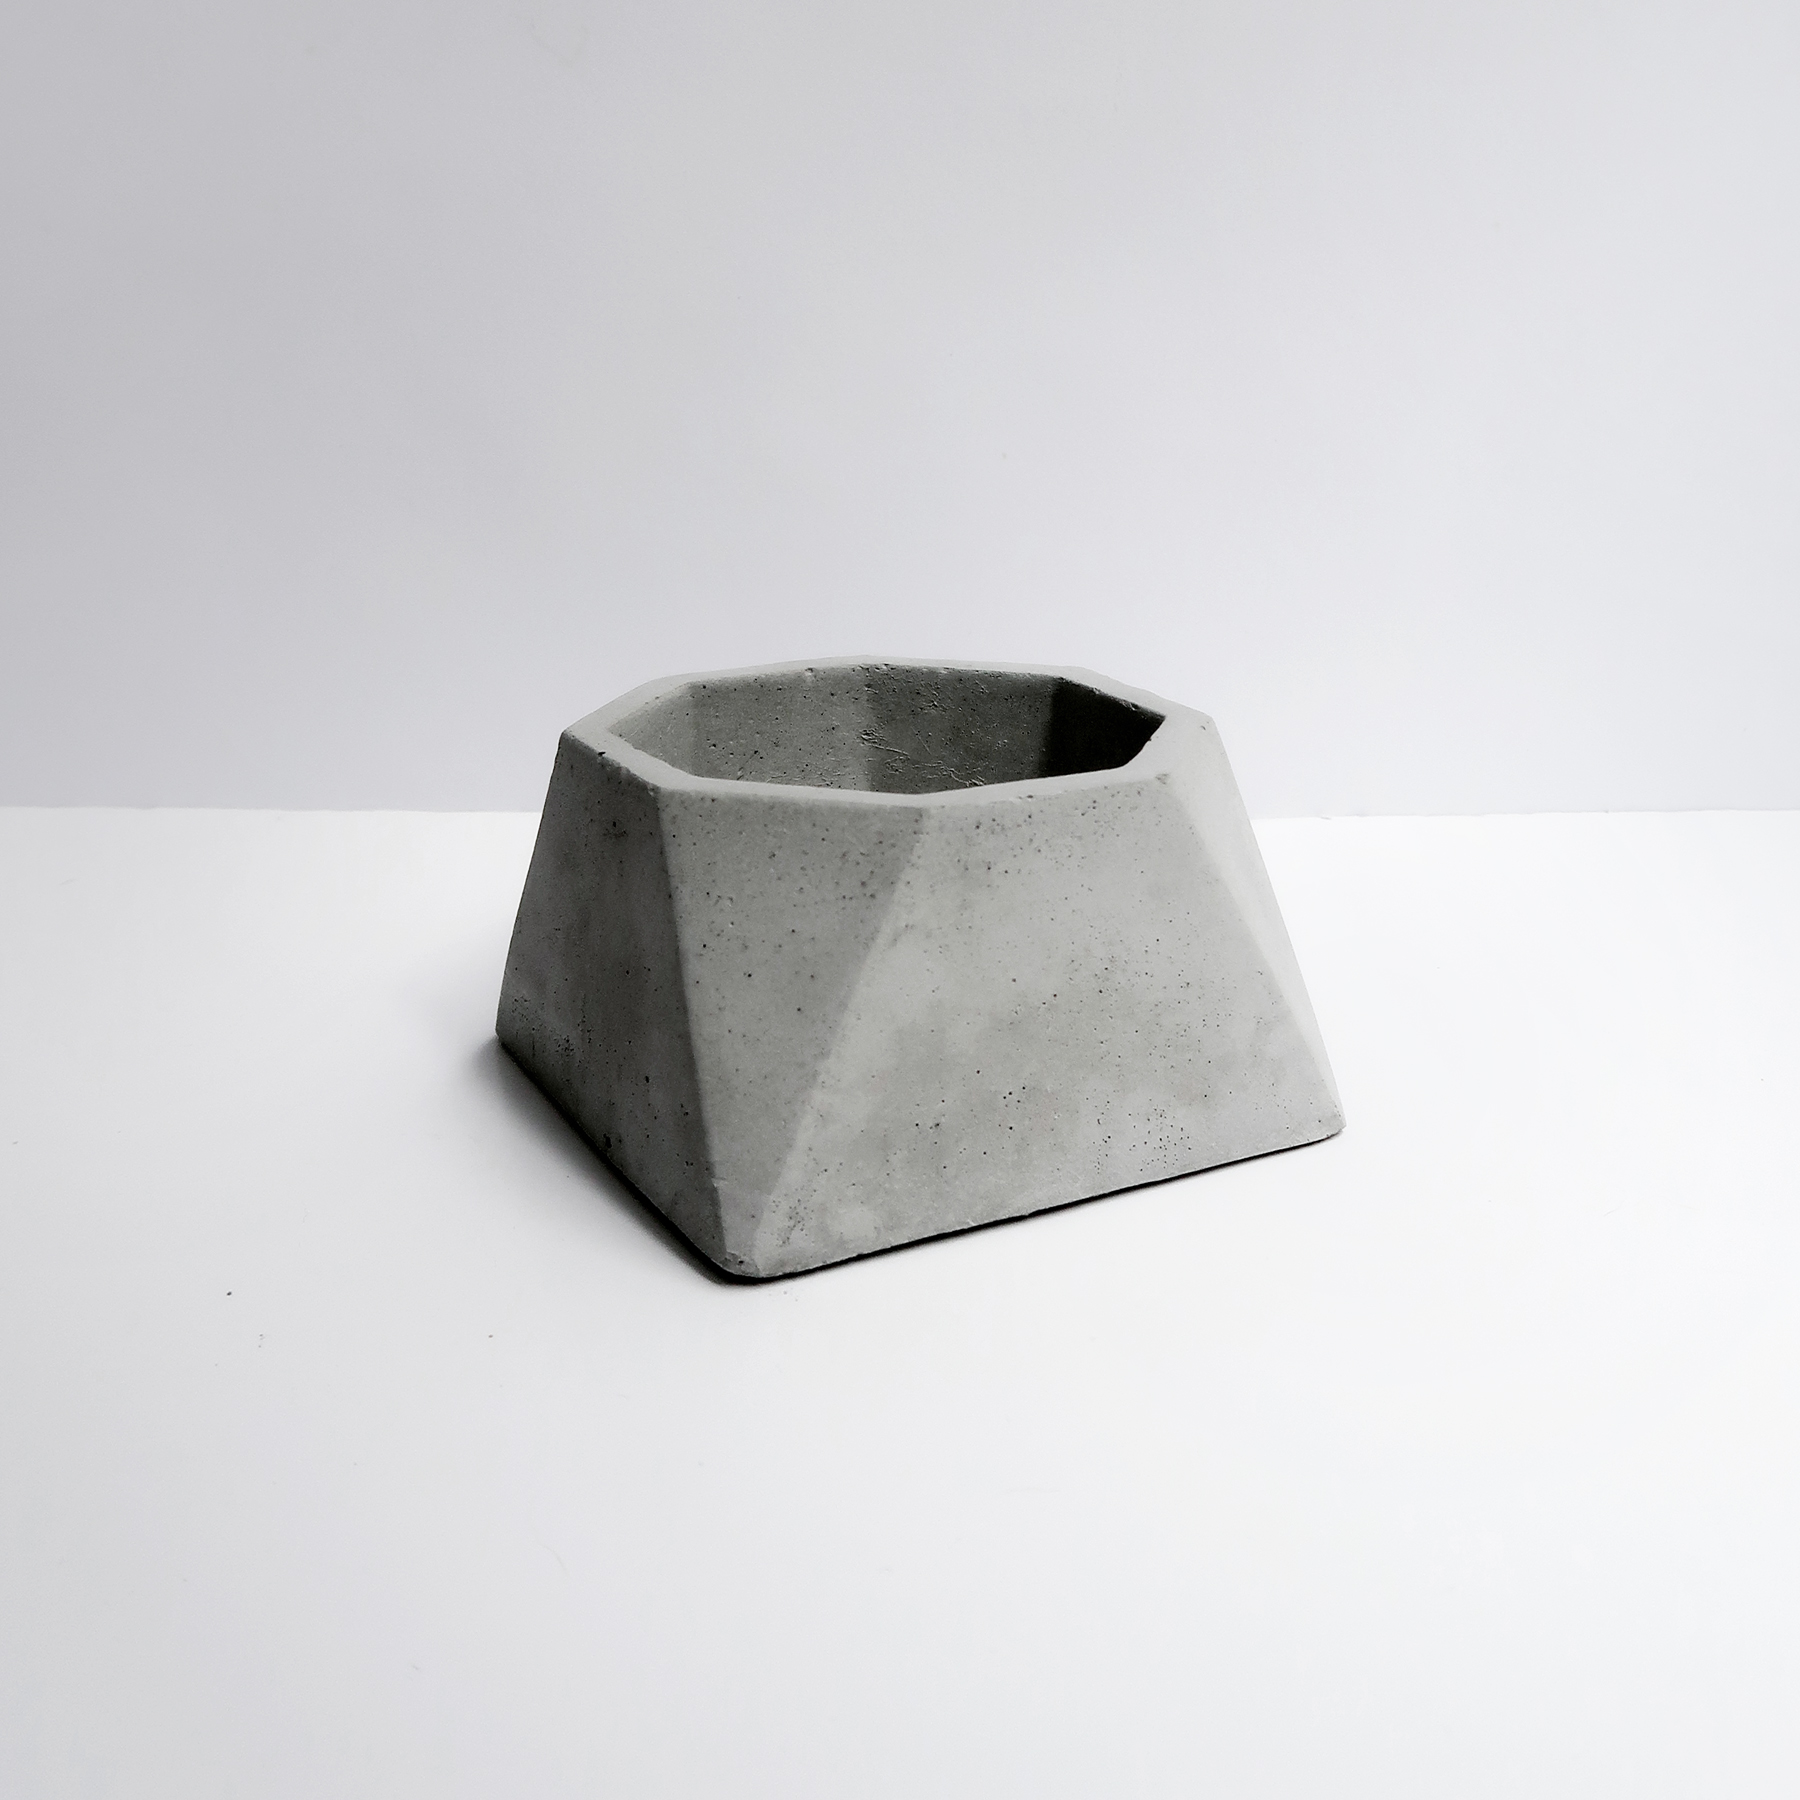 VIEWPOINT 視角八邊幾何水泥盆器 / Octagon Geometry Concrete Pot